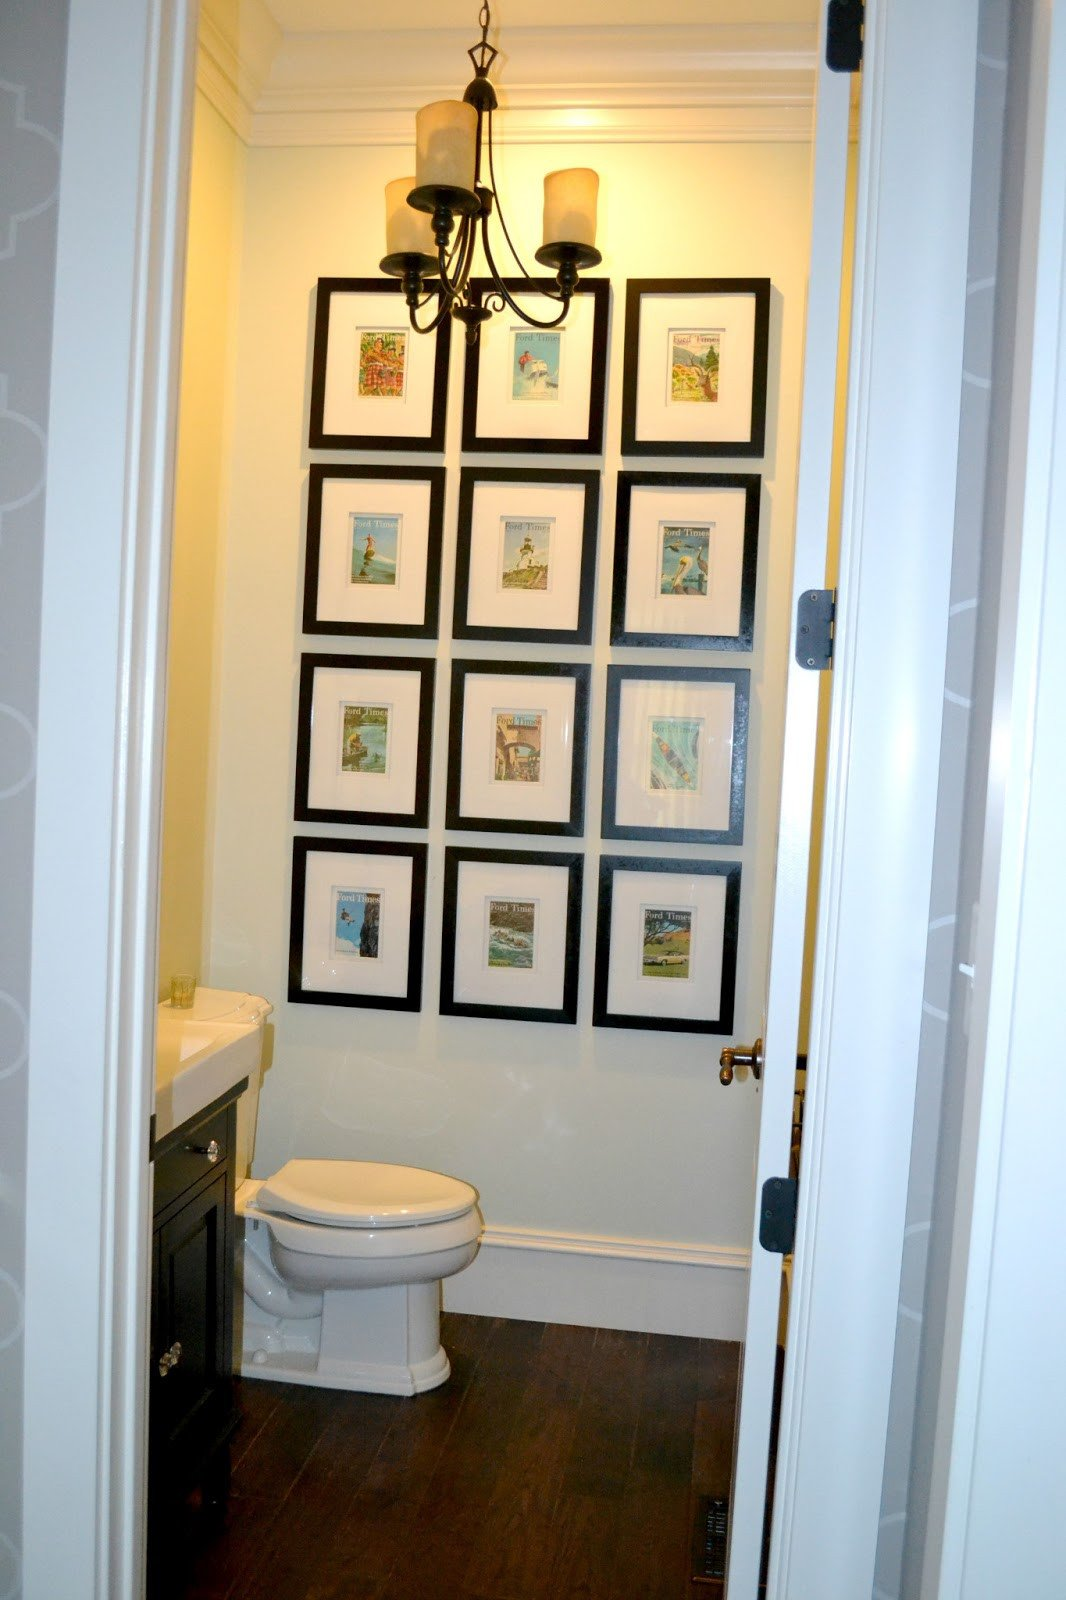 Wall Decor for Bathroom Ideas Luxury Decor You Adore Wall Art How to Make A Big Impact with A Small Bud